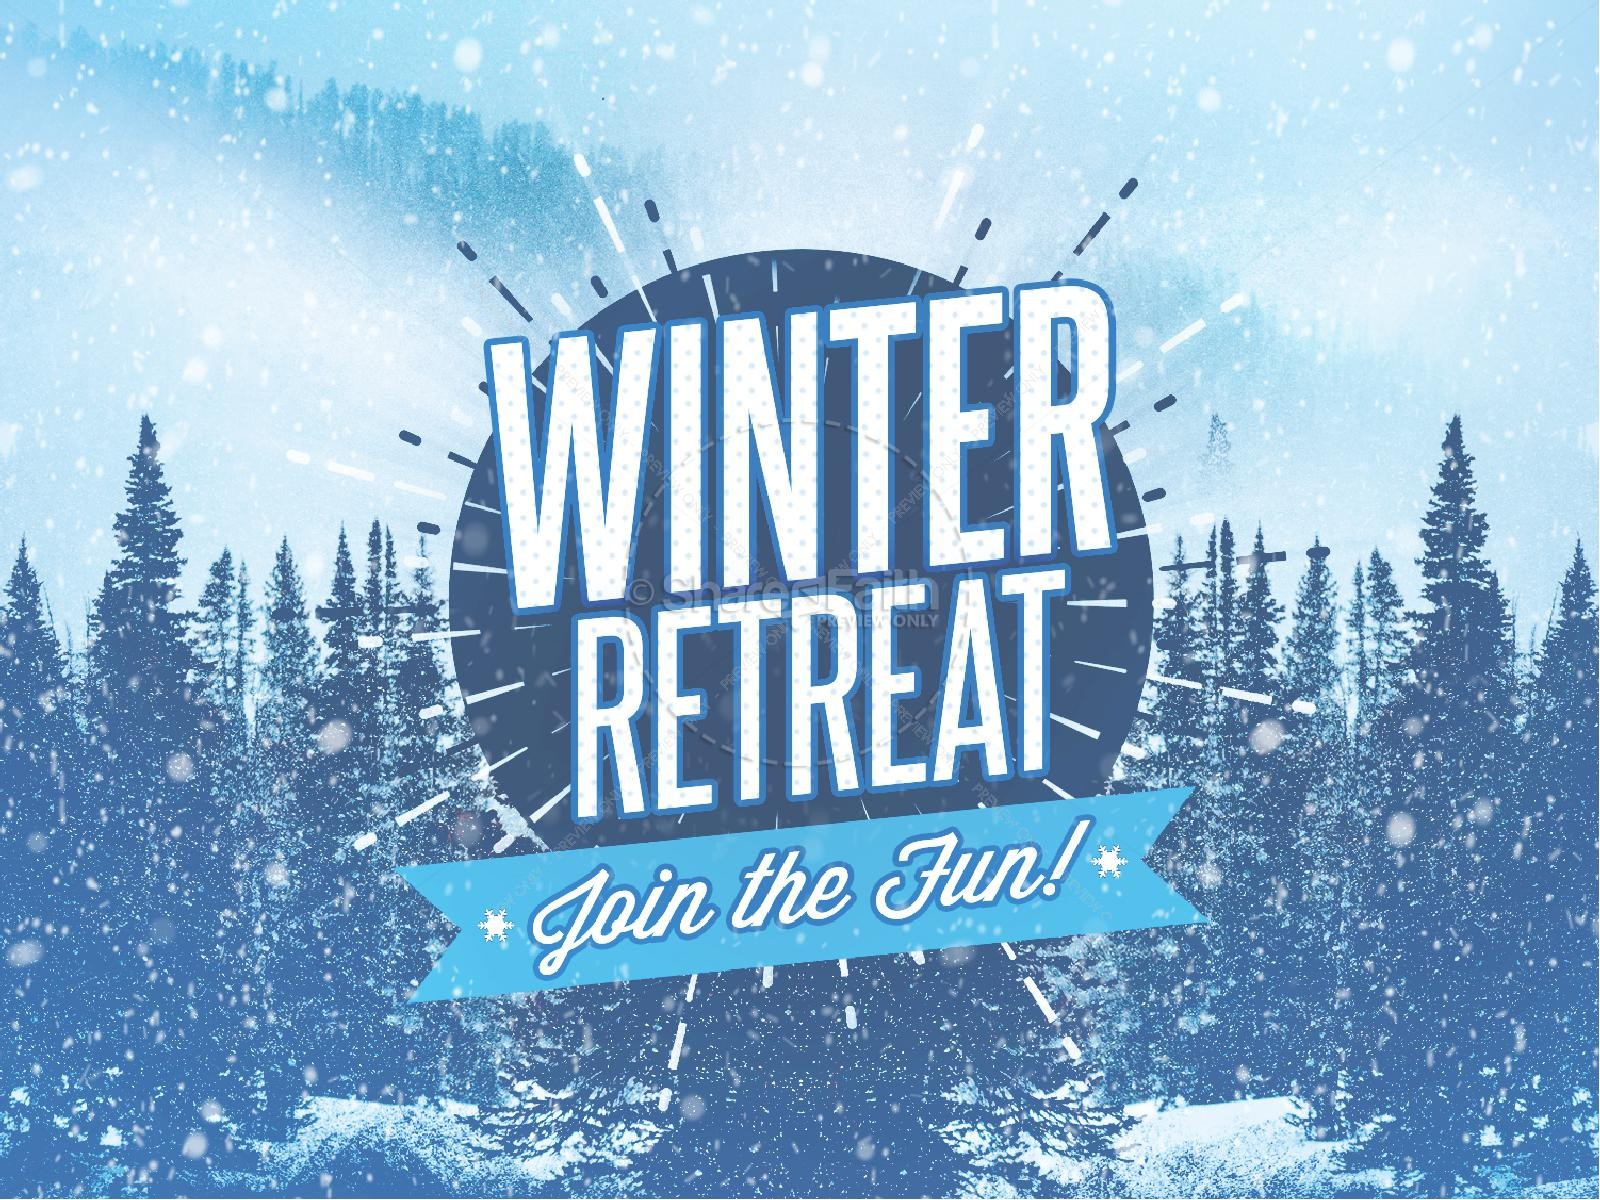 Winter Retreat Snowy Church PowerPoint